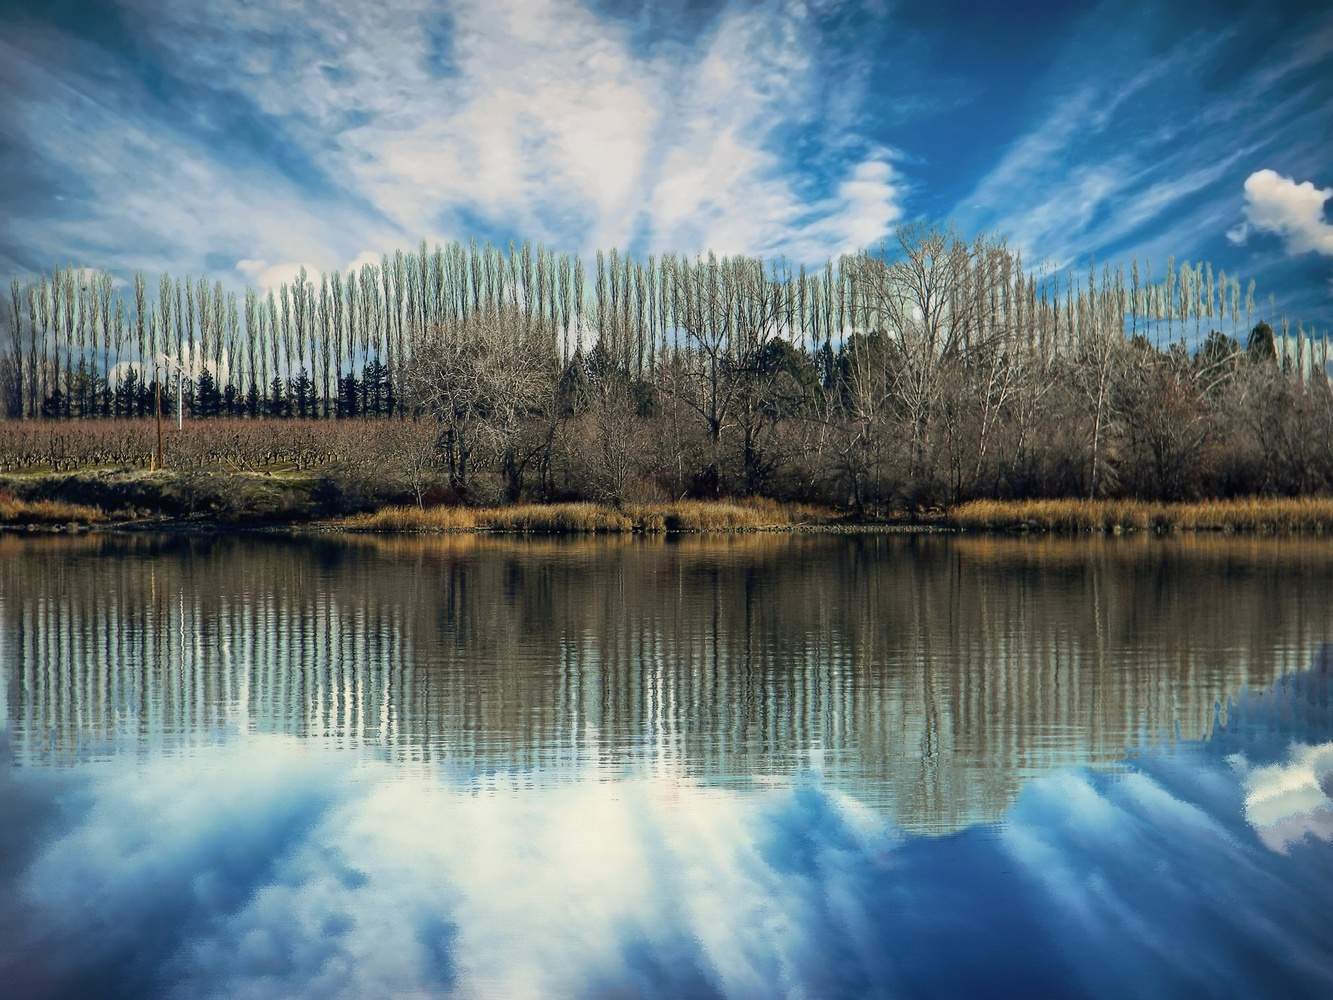 The tree line by Chris Snyder